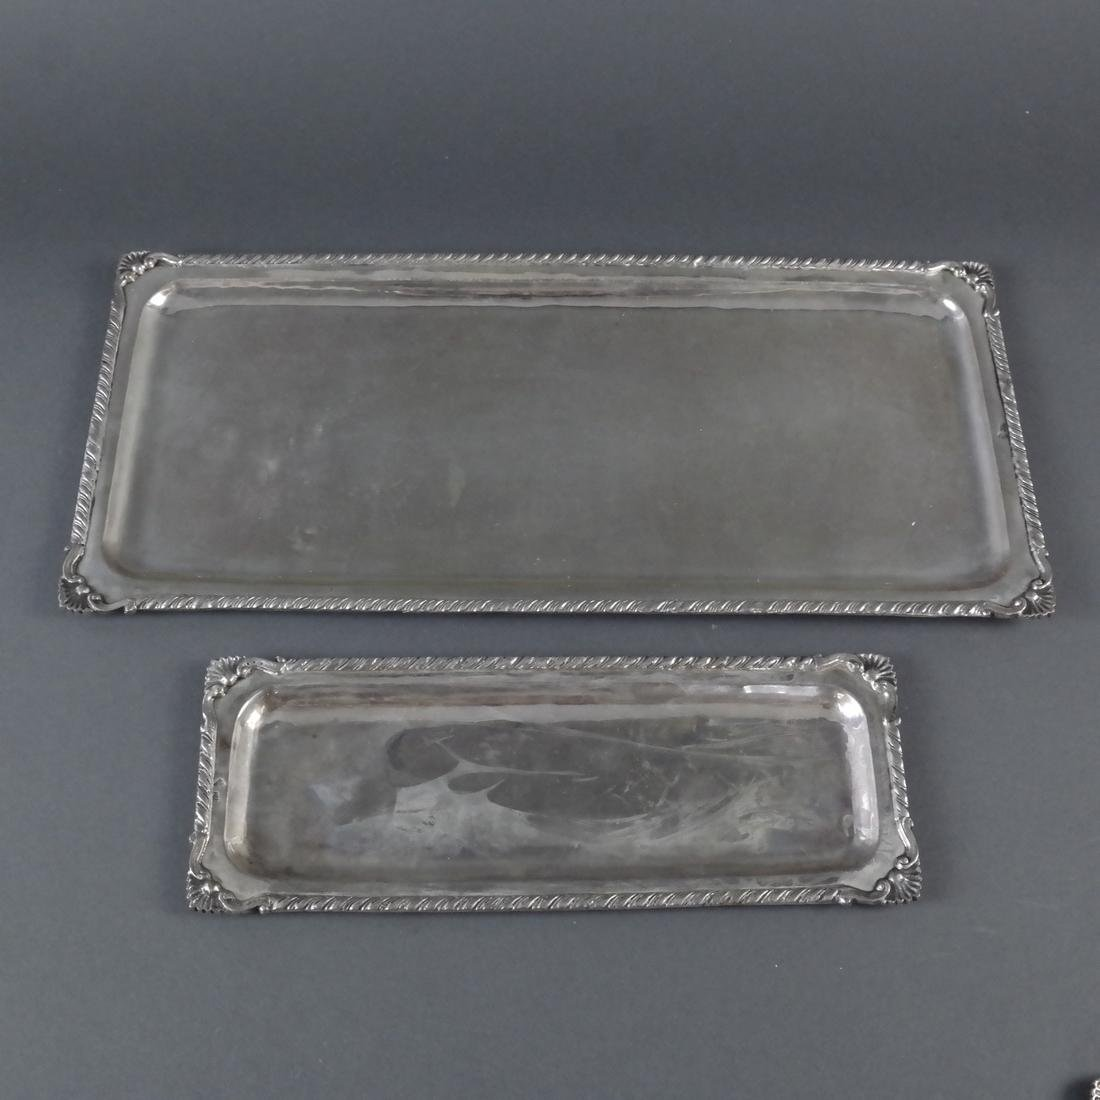 2 .900 Standard Silver Rectangular Trays